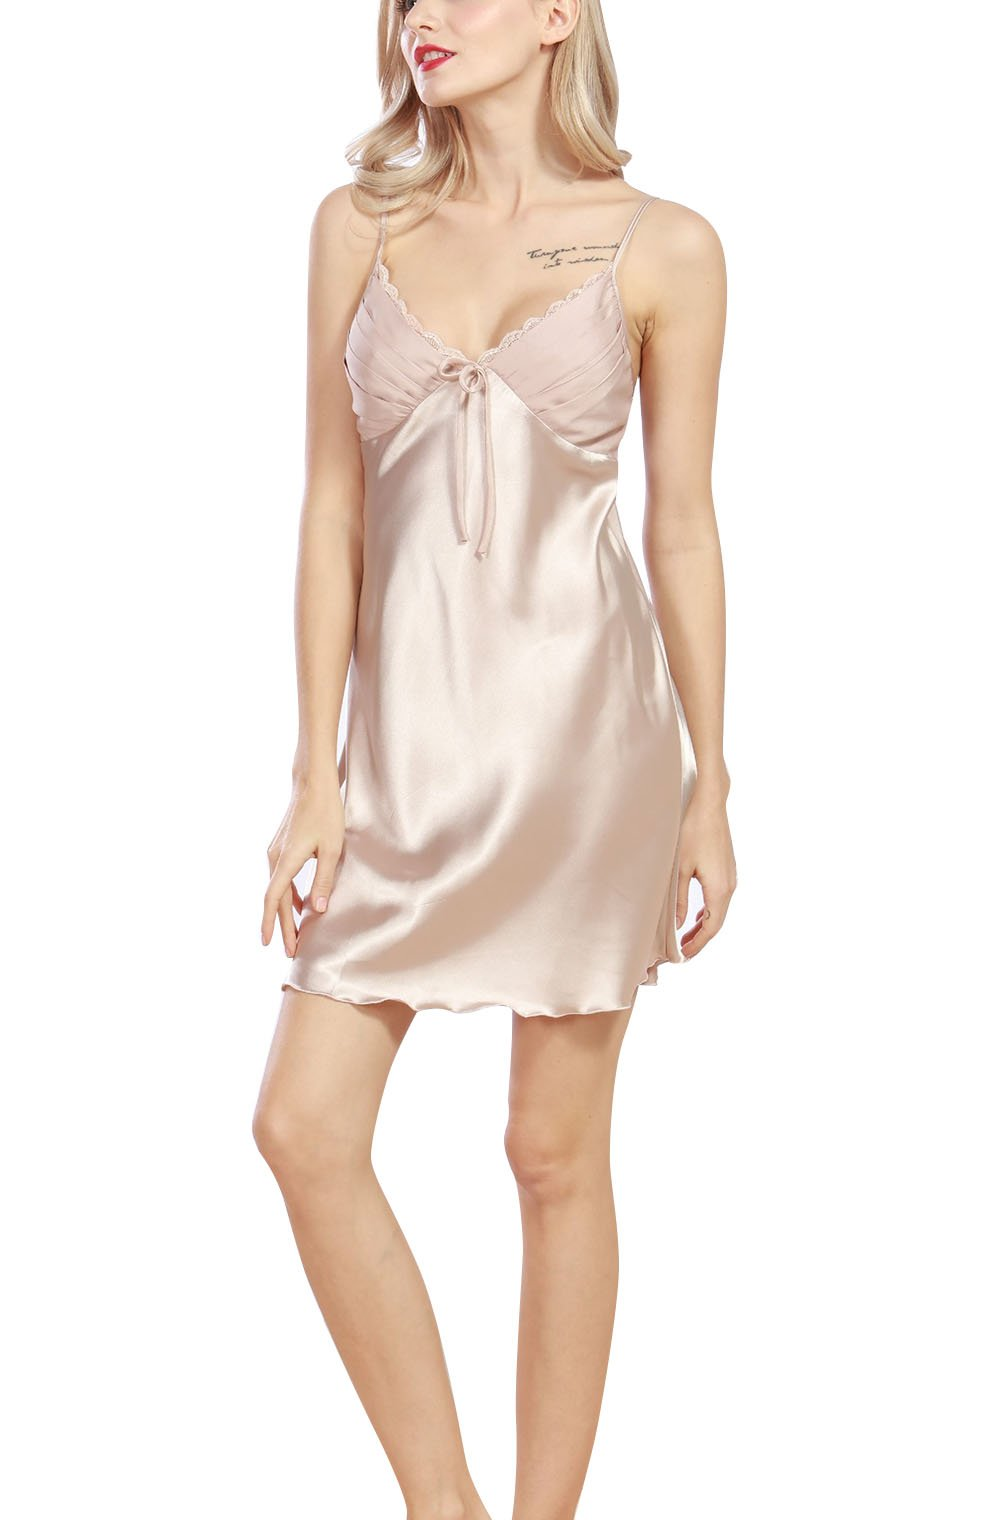 4Ping Women's Spring and Summer Imitation Silk Pajamas Sexy Sling Sleep Dress Beige M